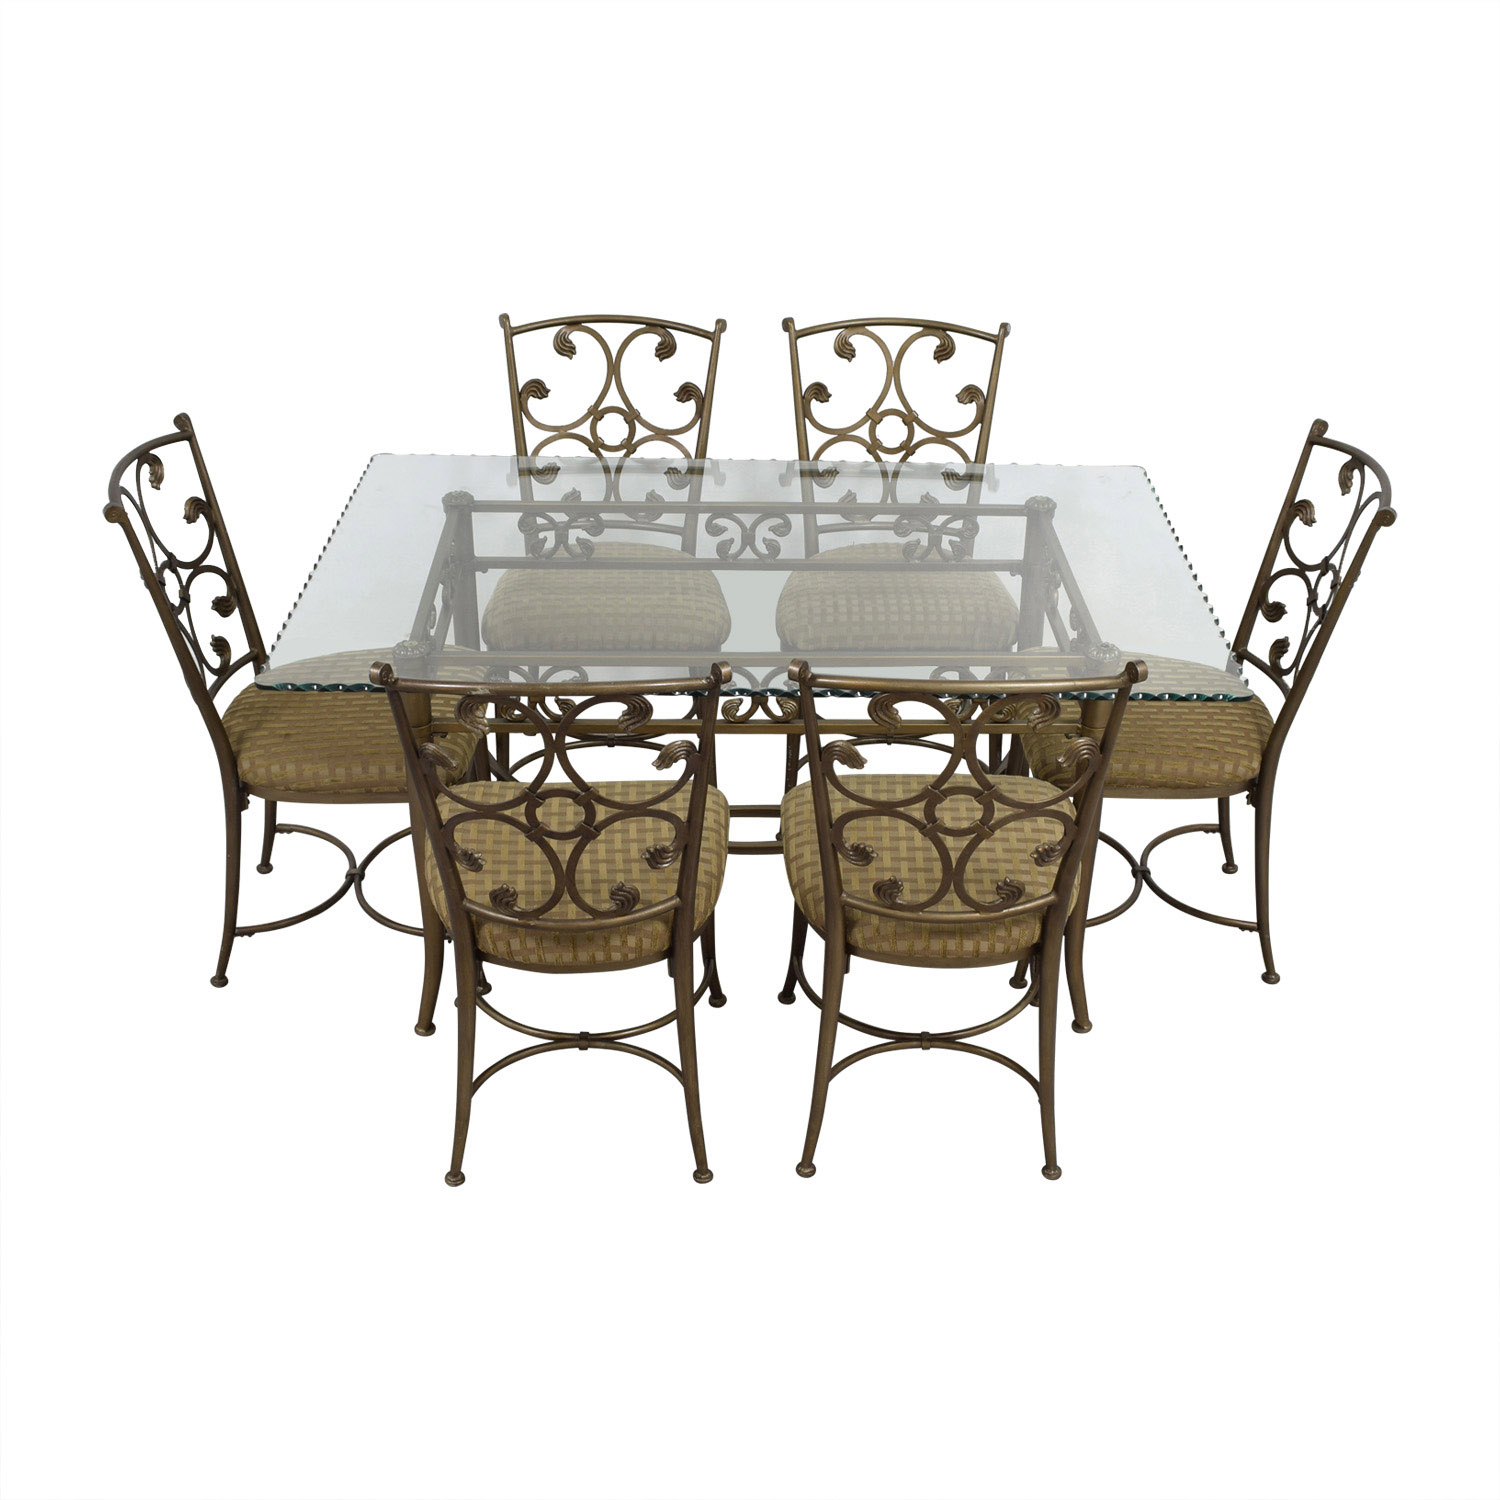 Glass and Gold Wrought Iron Dining Set on sale